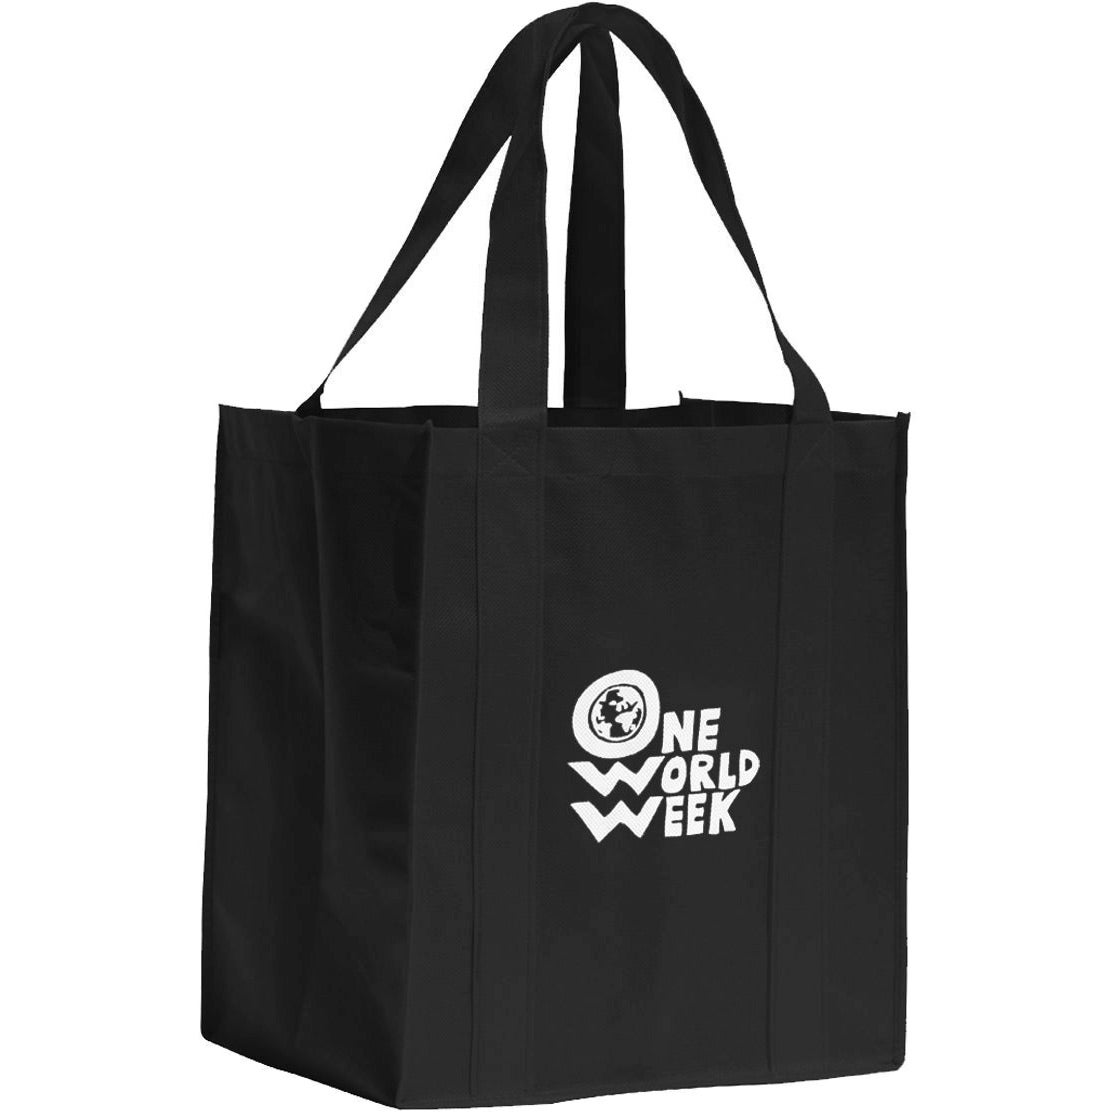 Black Per Grocery Bag For Your School